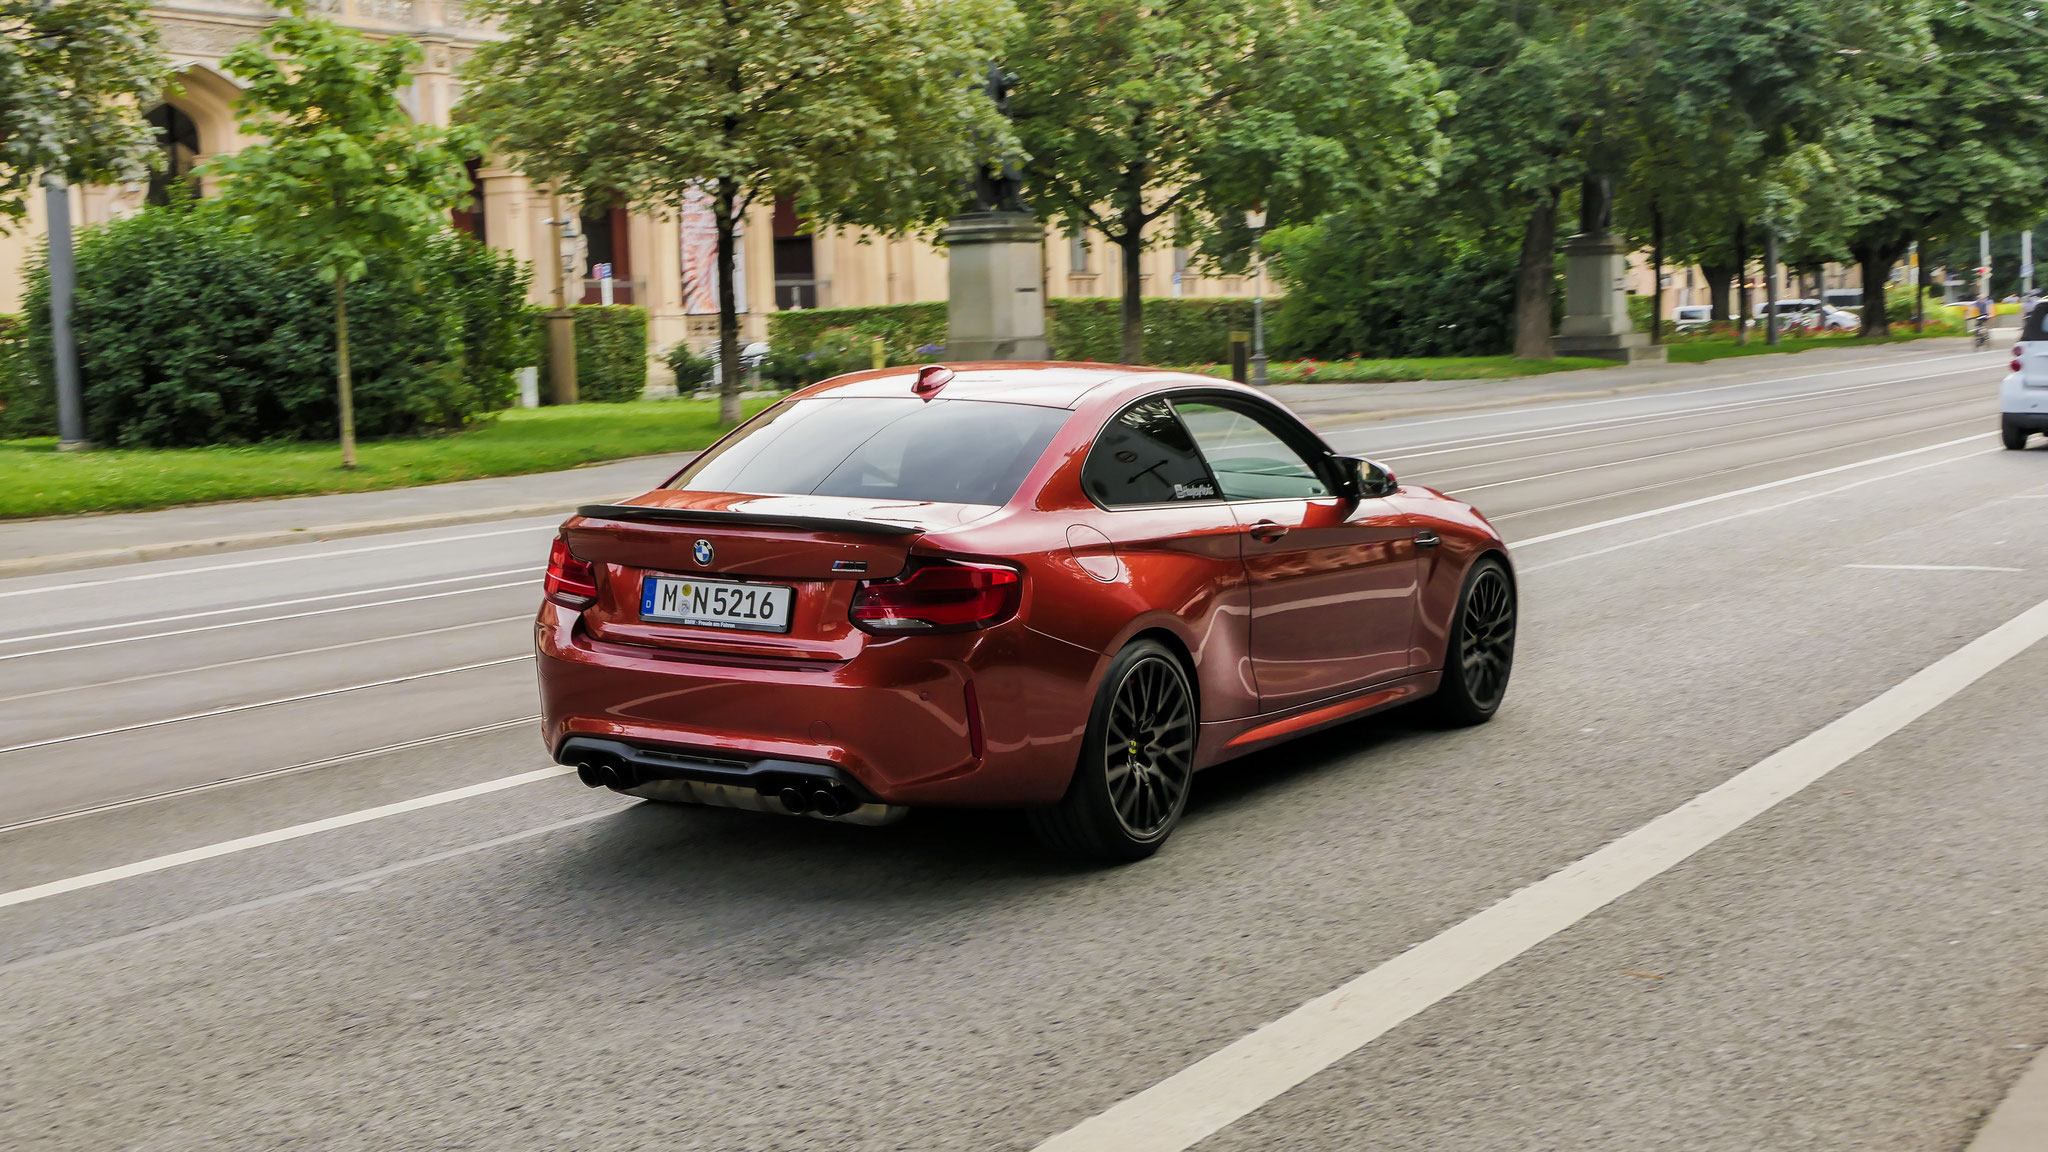 BMW M2 Competition - M-N-5216